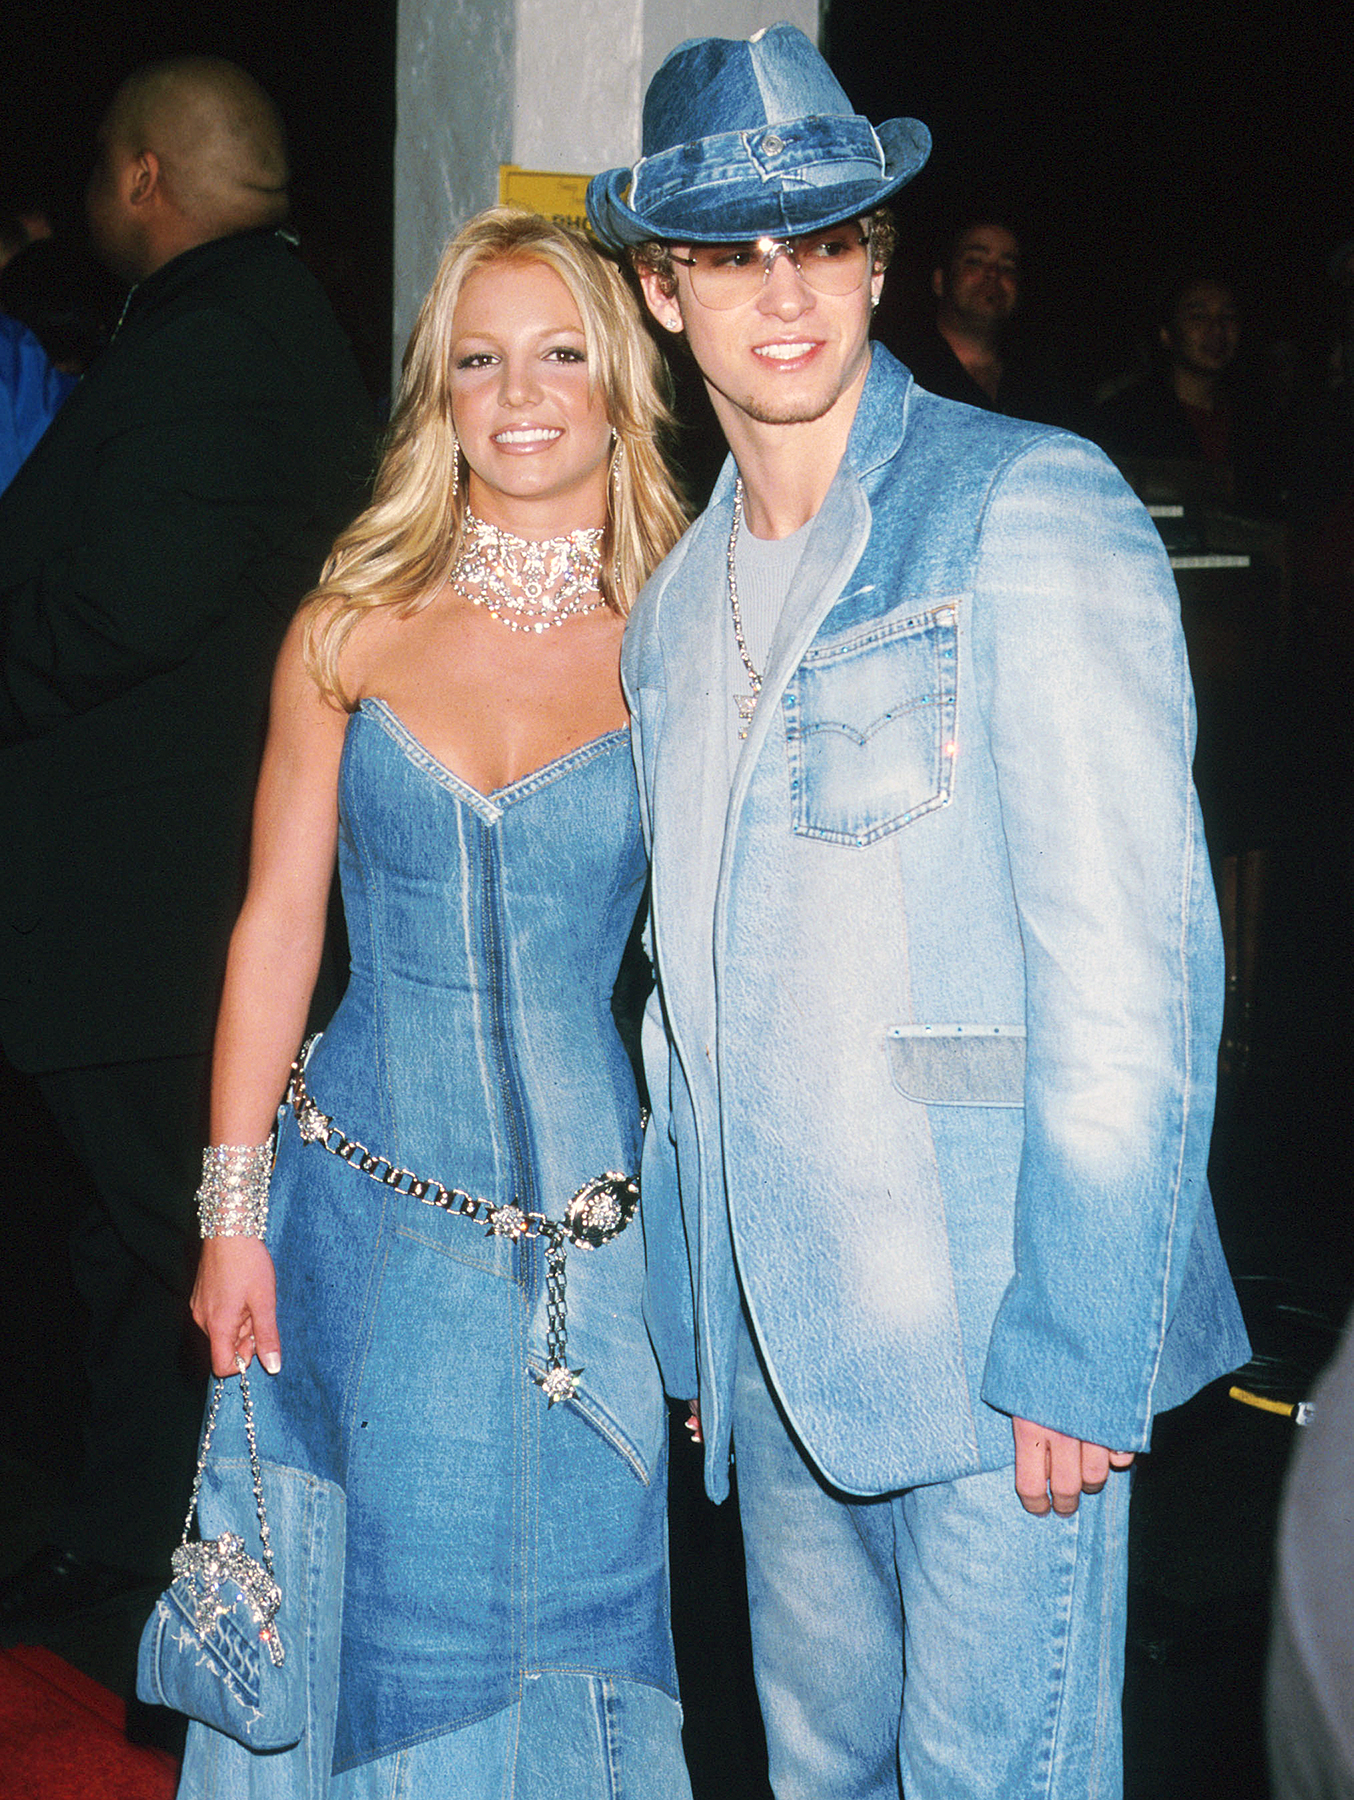 Britney Spears Justin Timberlake matching denim